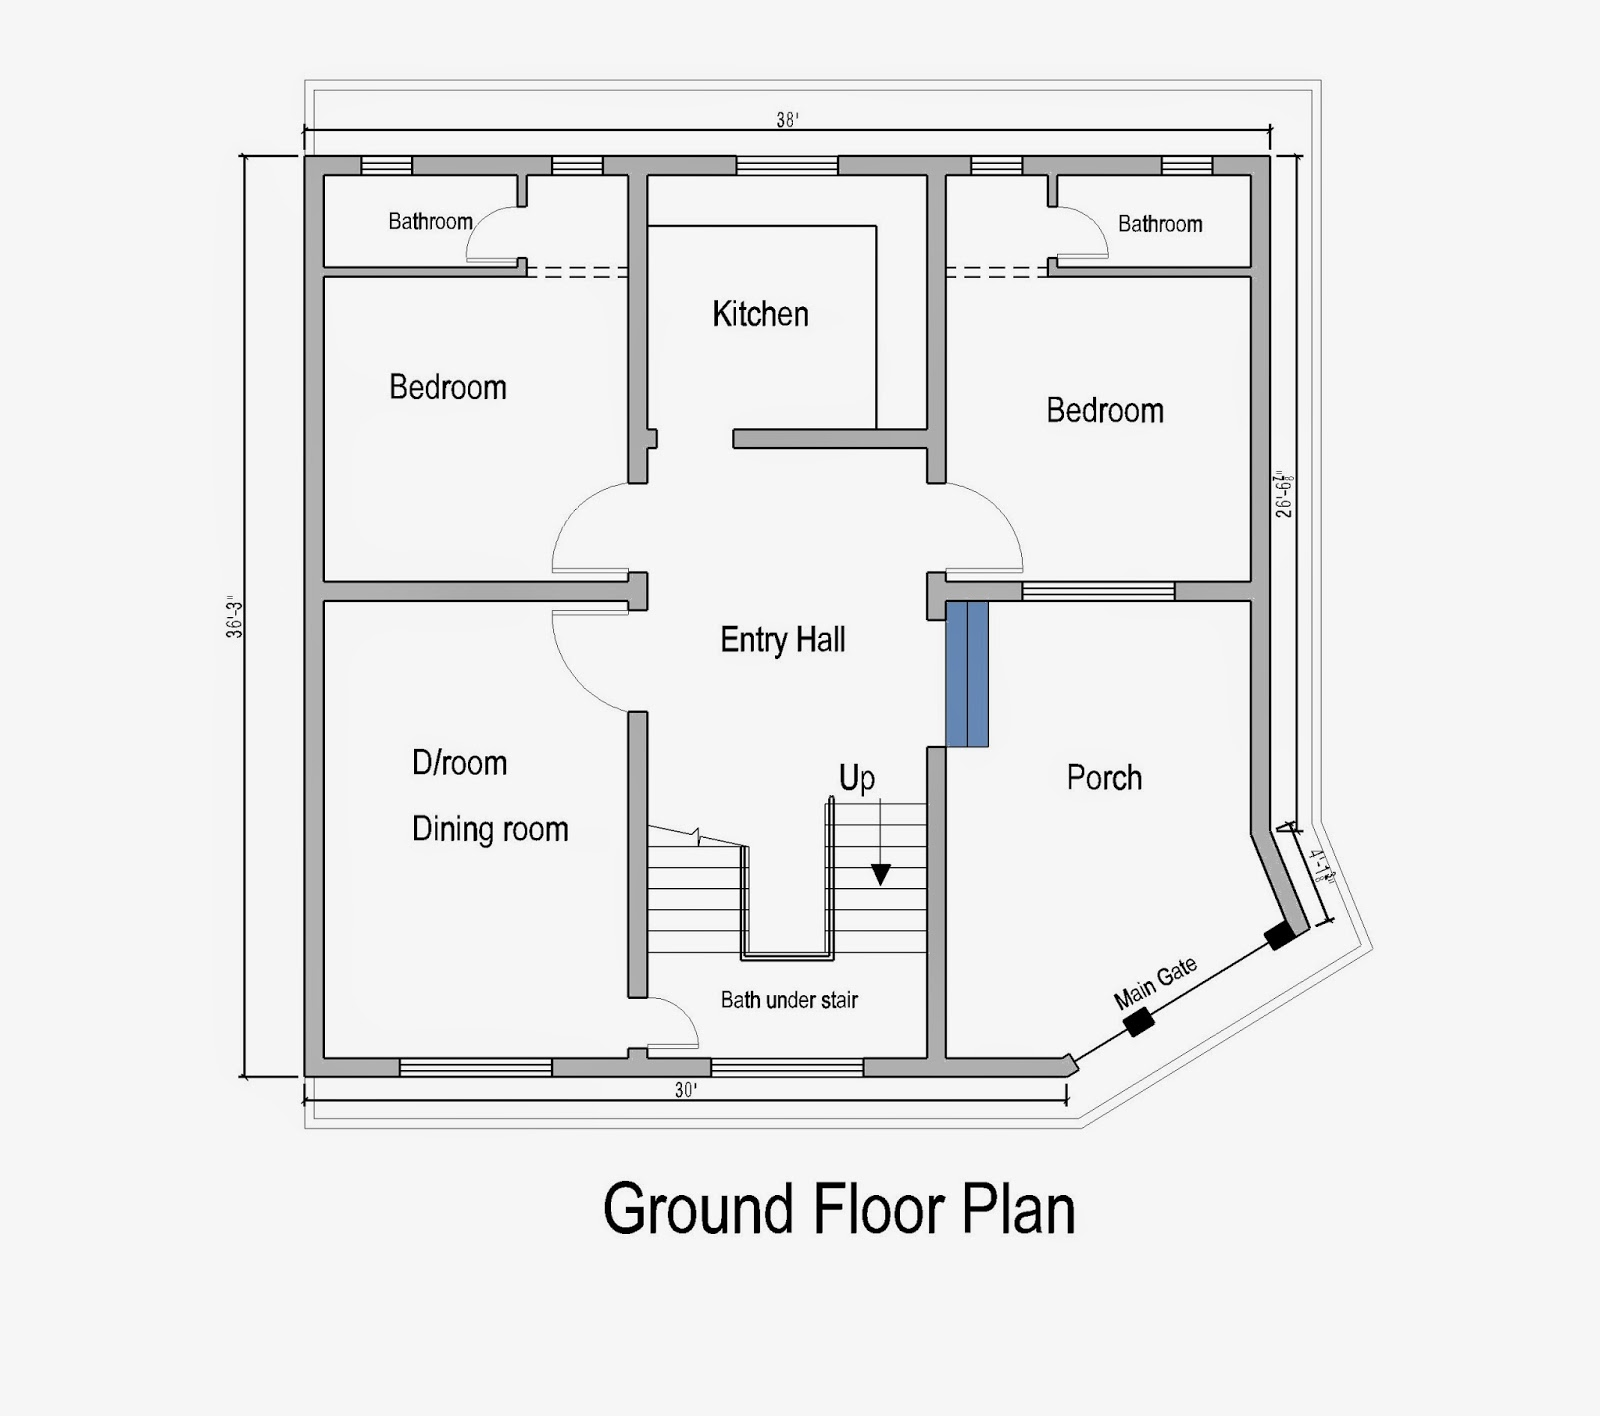 Home plans in pakistan home decor architect designer home plan in pakistan - Home decorating style names plan ...